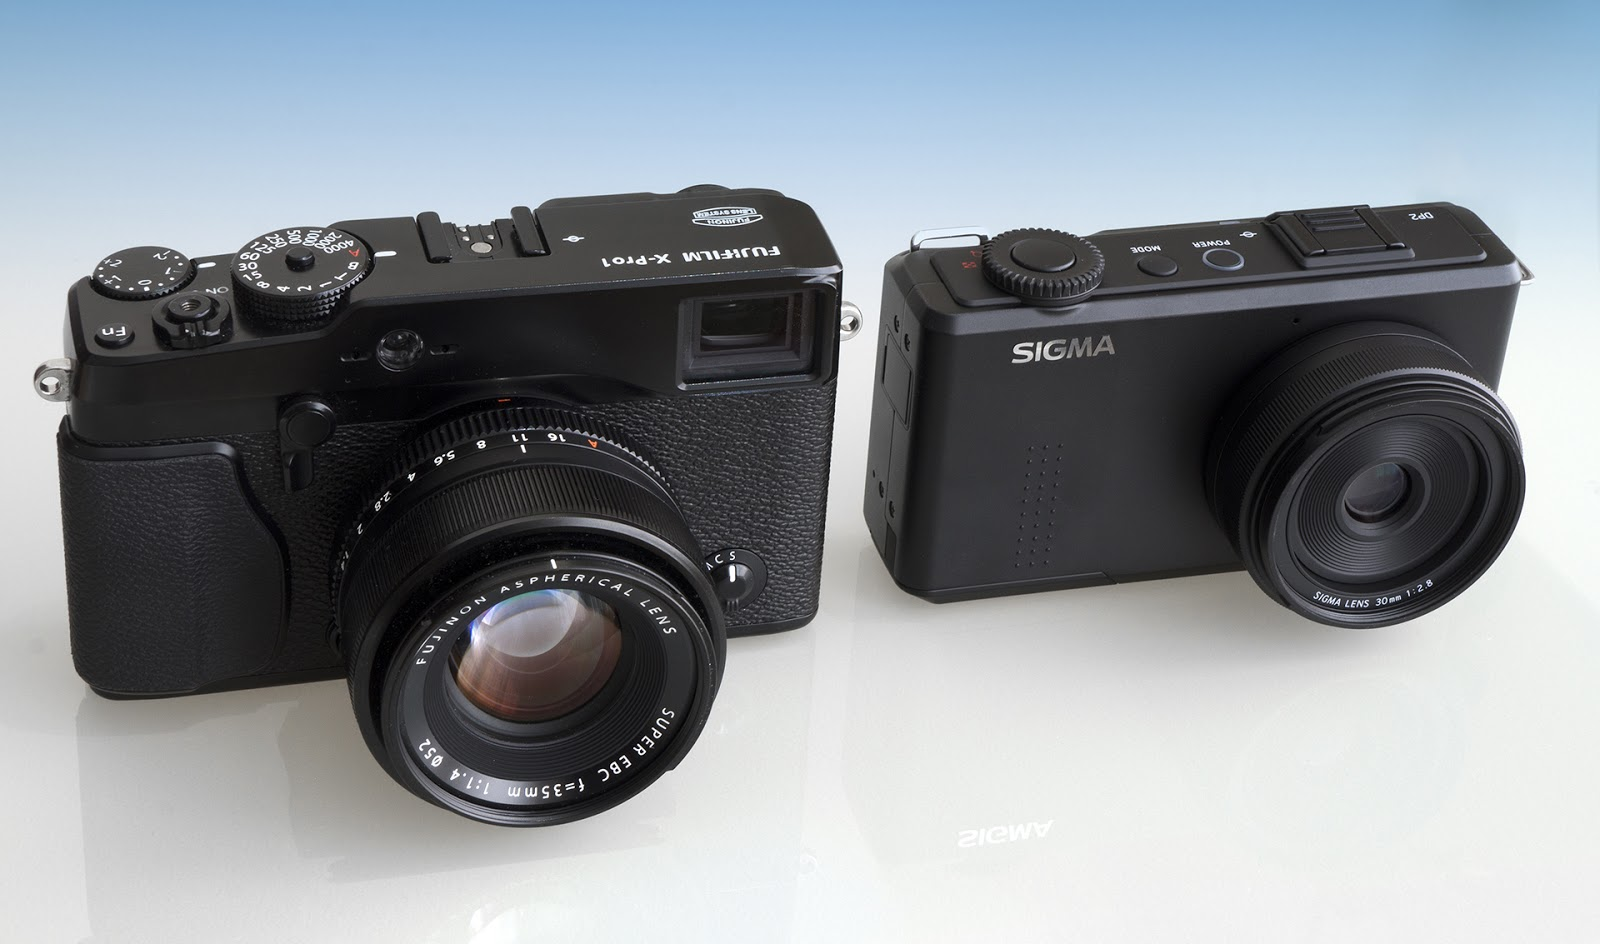 fujifilm x pro 1 vs sigma dp2 merrill first impression and final. Black Bedroom Furniture Sets. Home Design Ideas